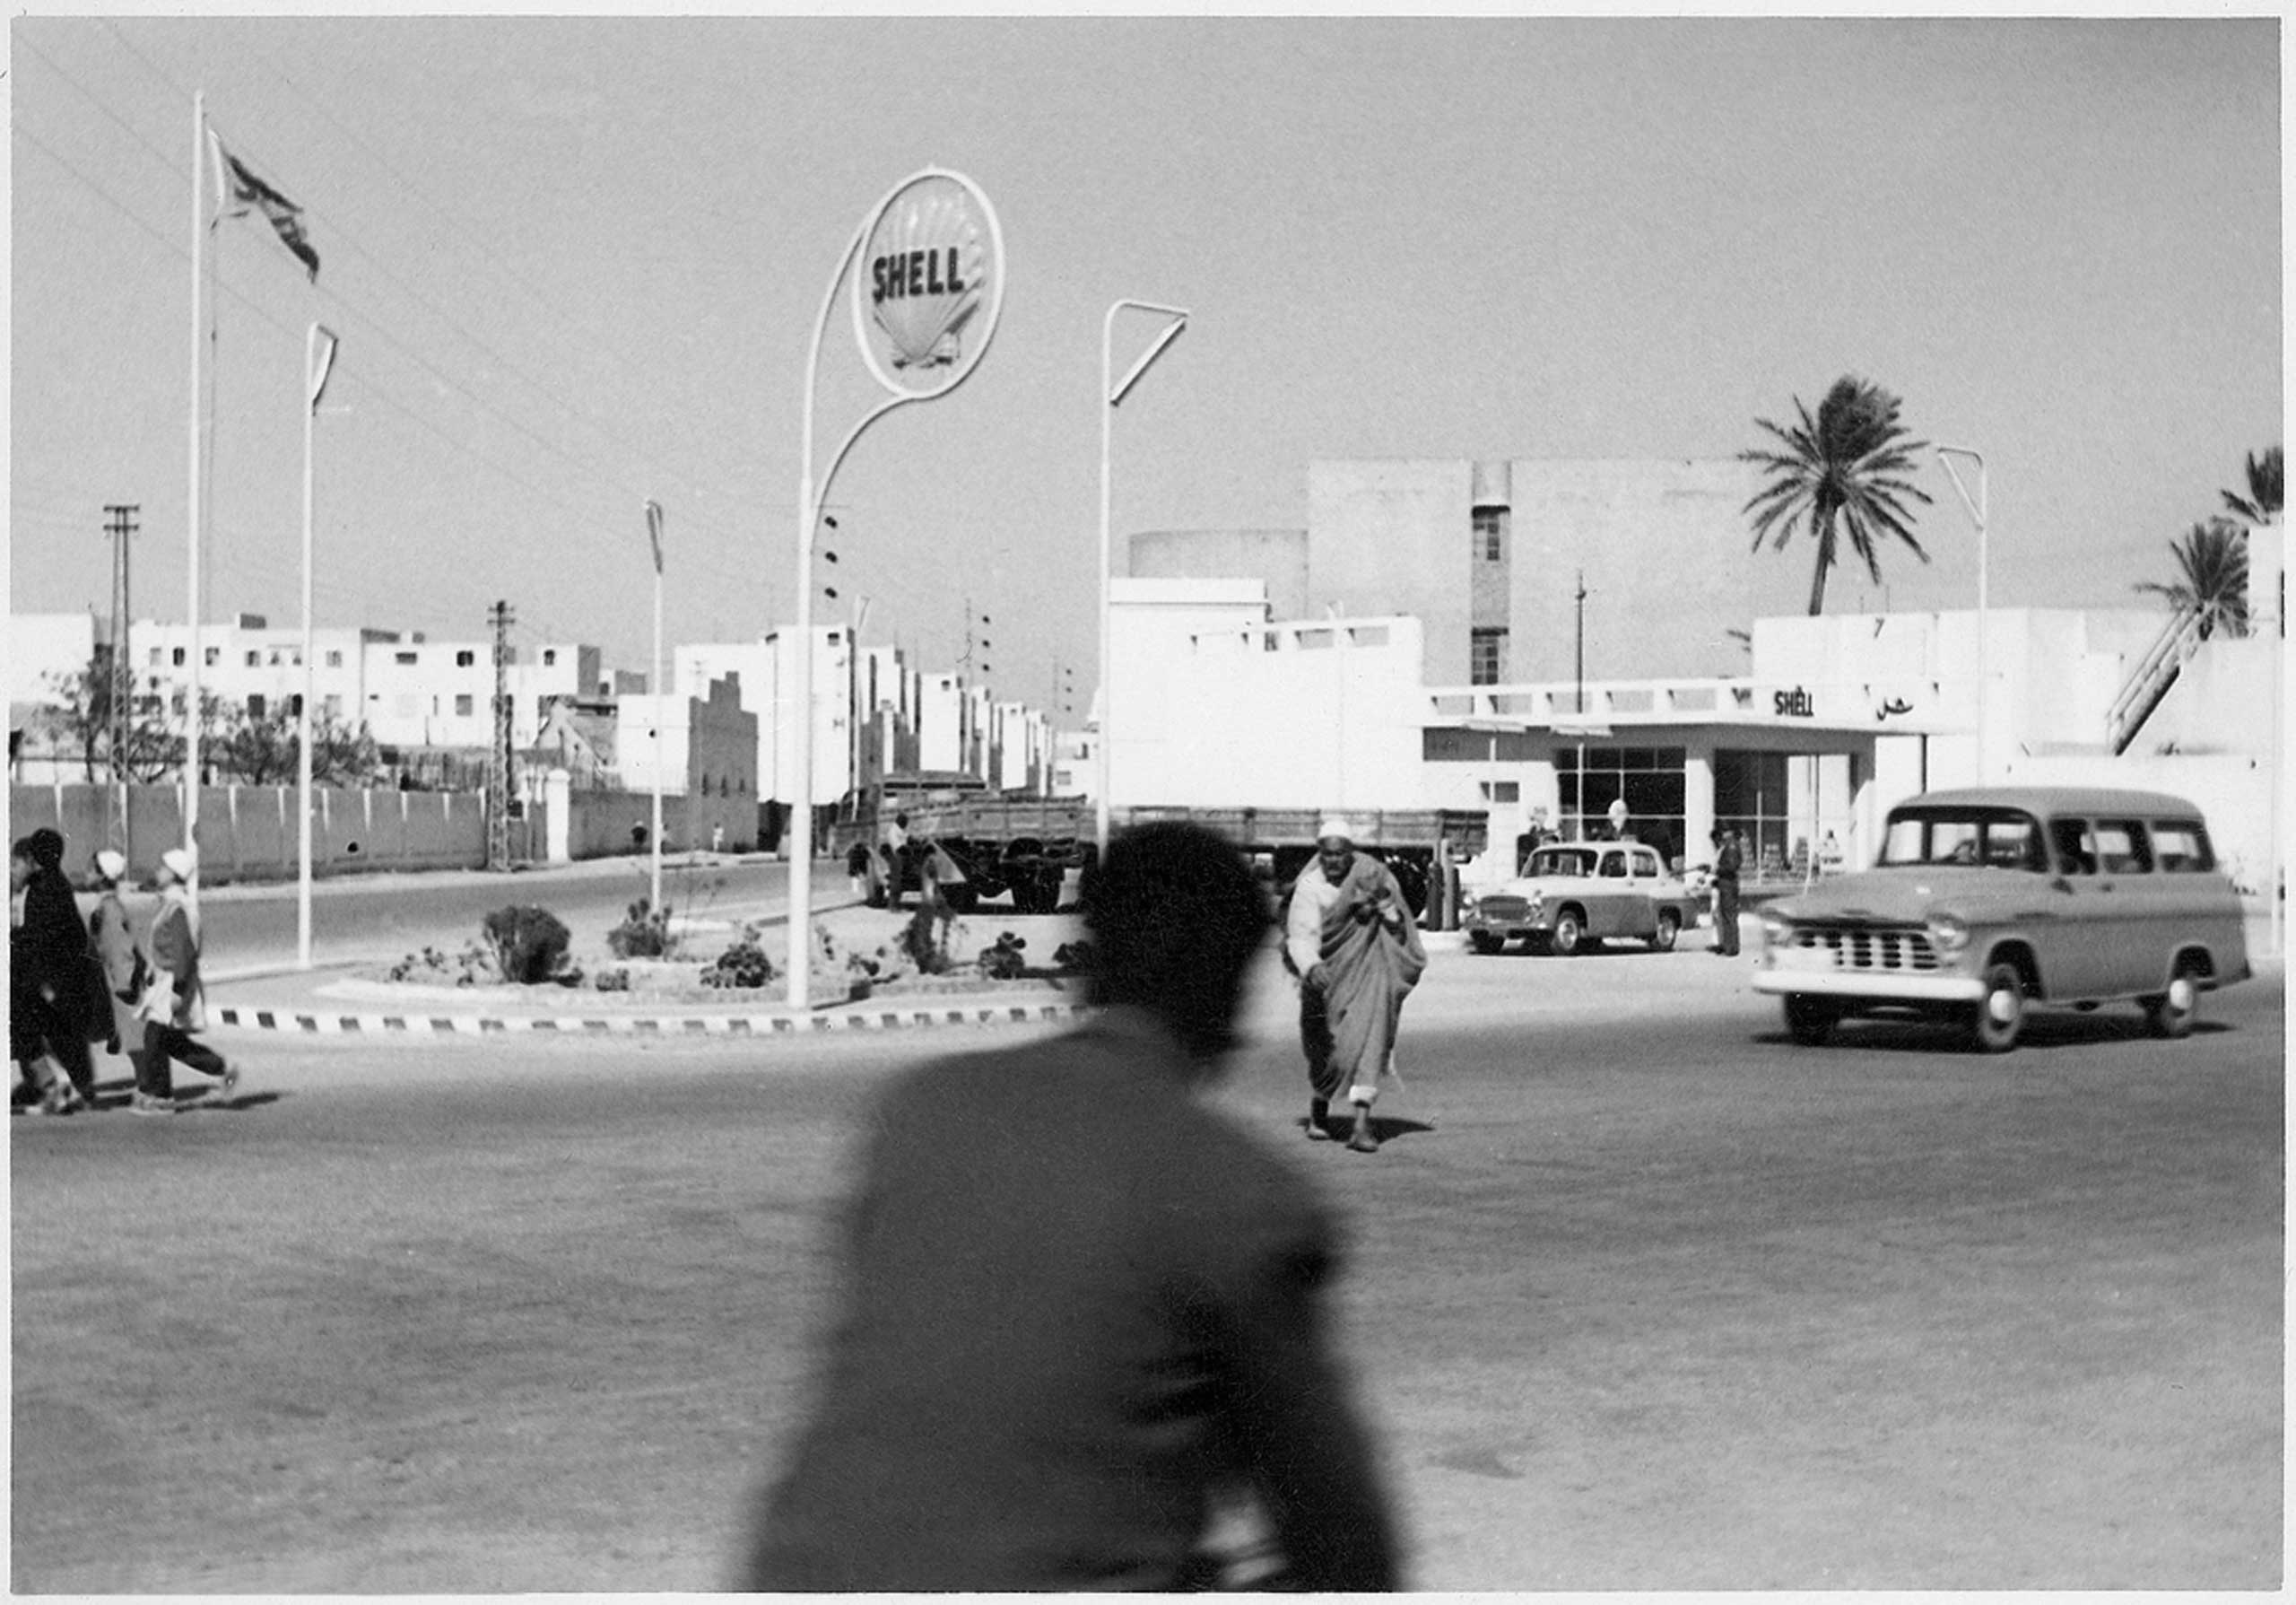 The first Shell gas station that Mohamed Nga opened in Tripoli